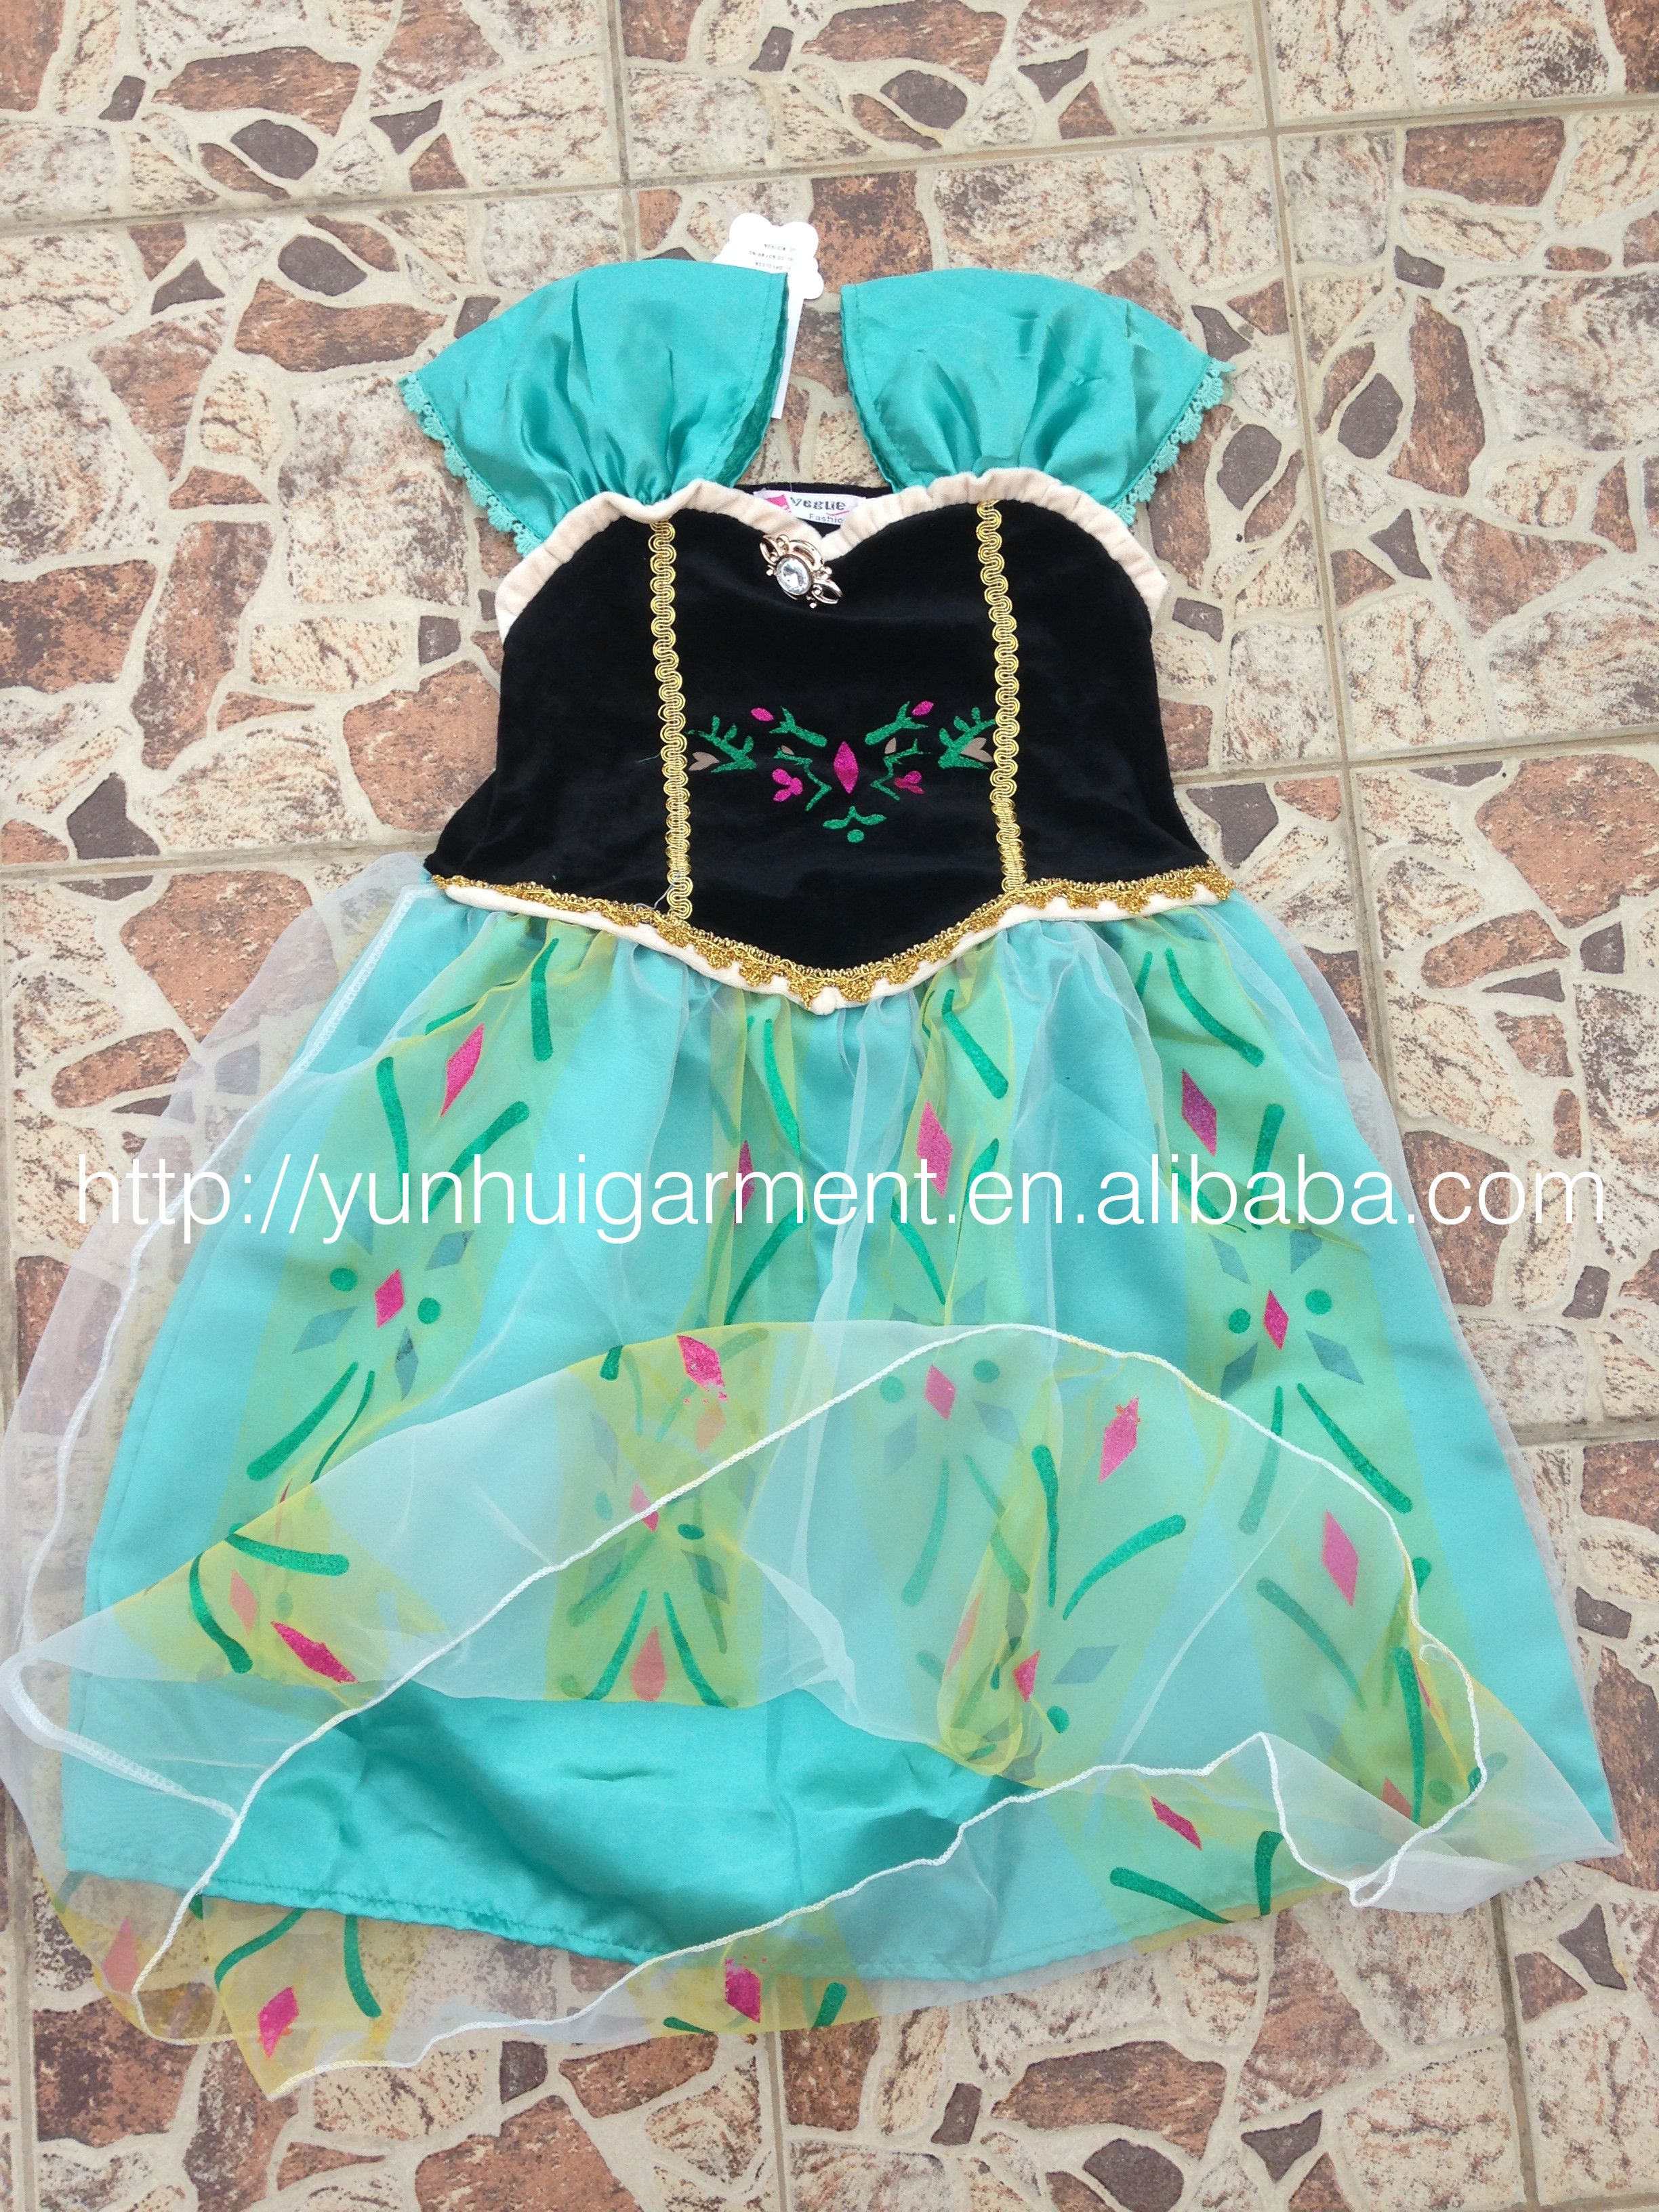 https://www.facebook.com/yunhuigarment New design with petticoat and ...